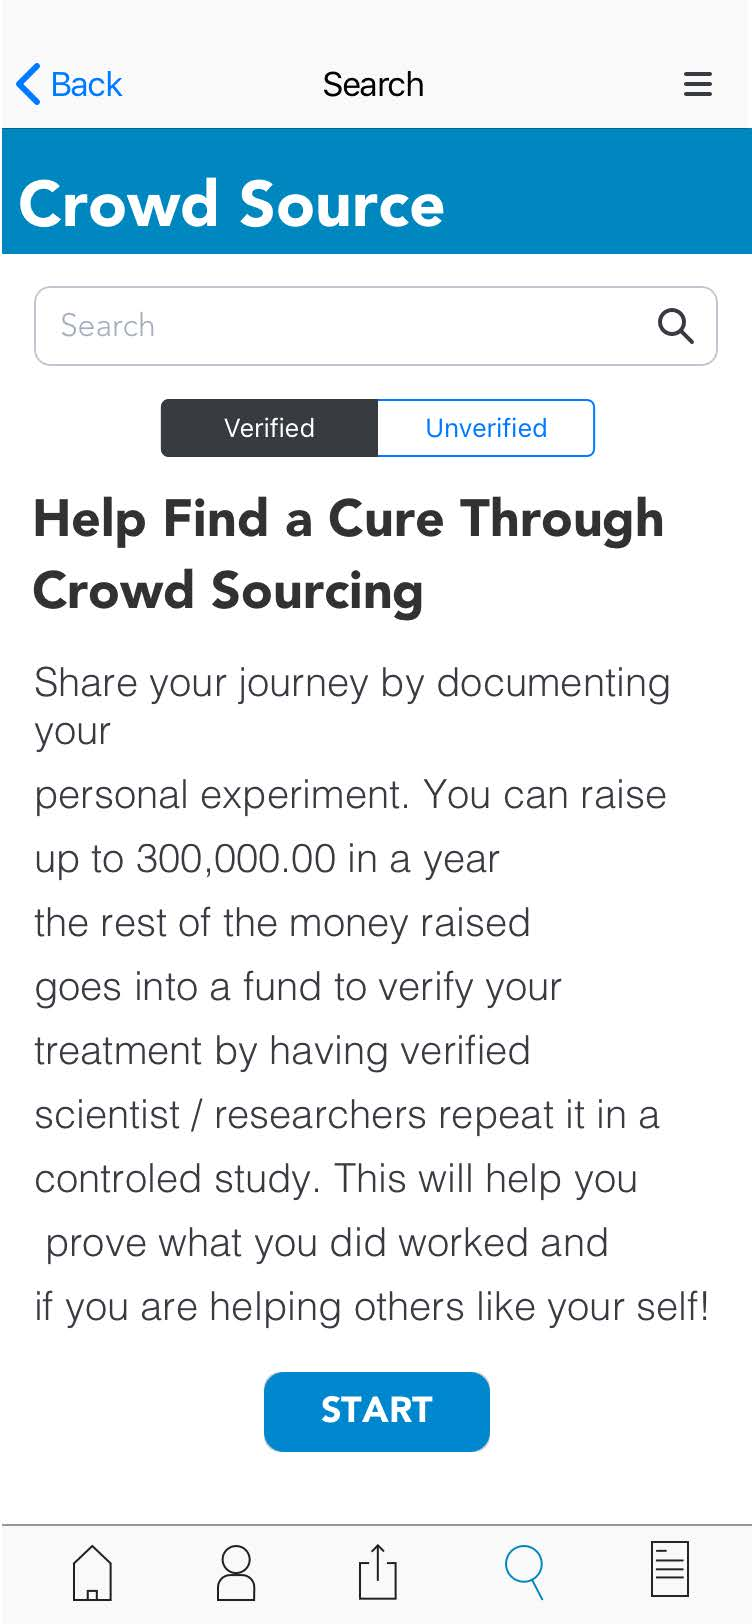 medium fidelity wireframe help find a cure through crowd sourcing